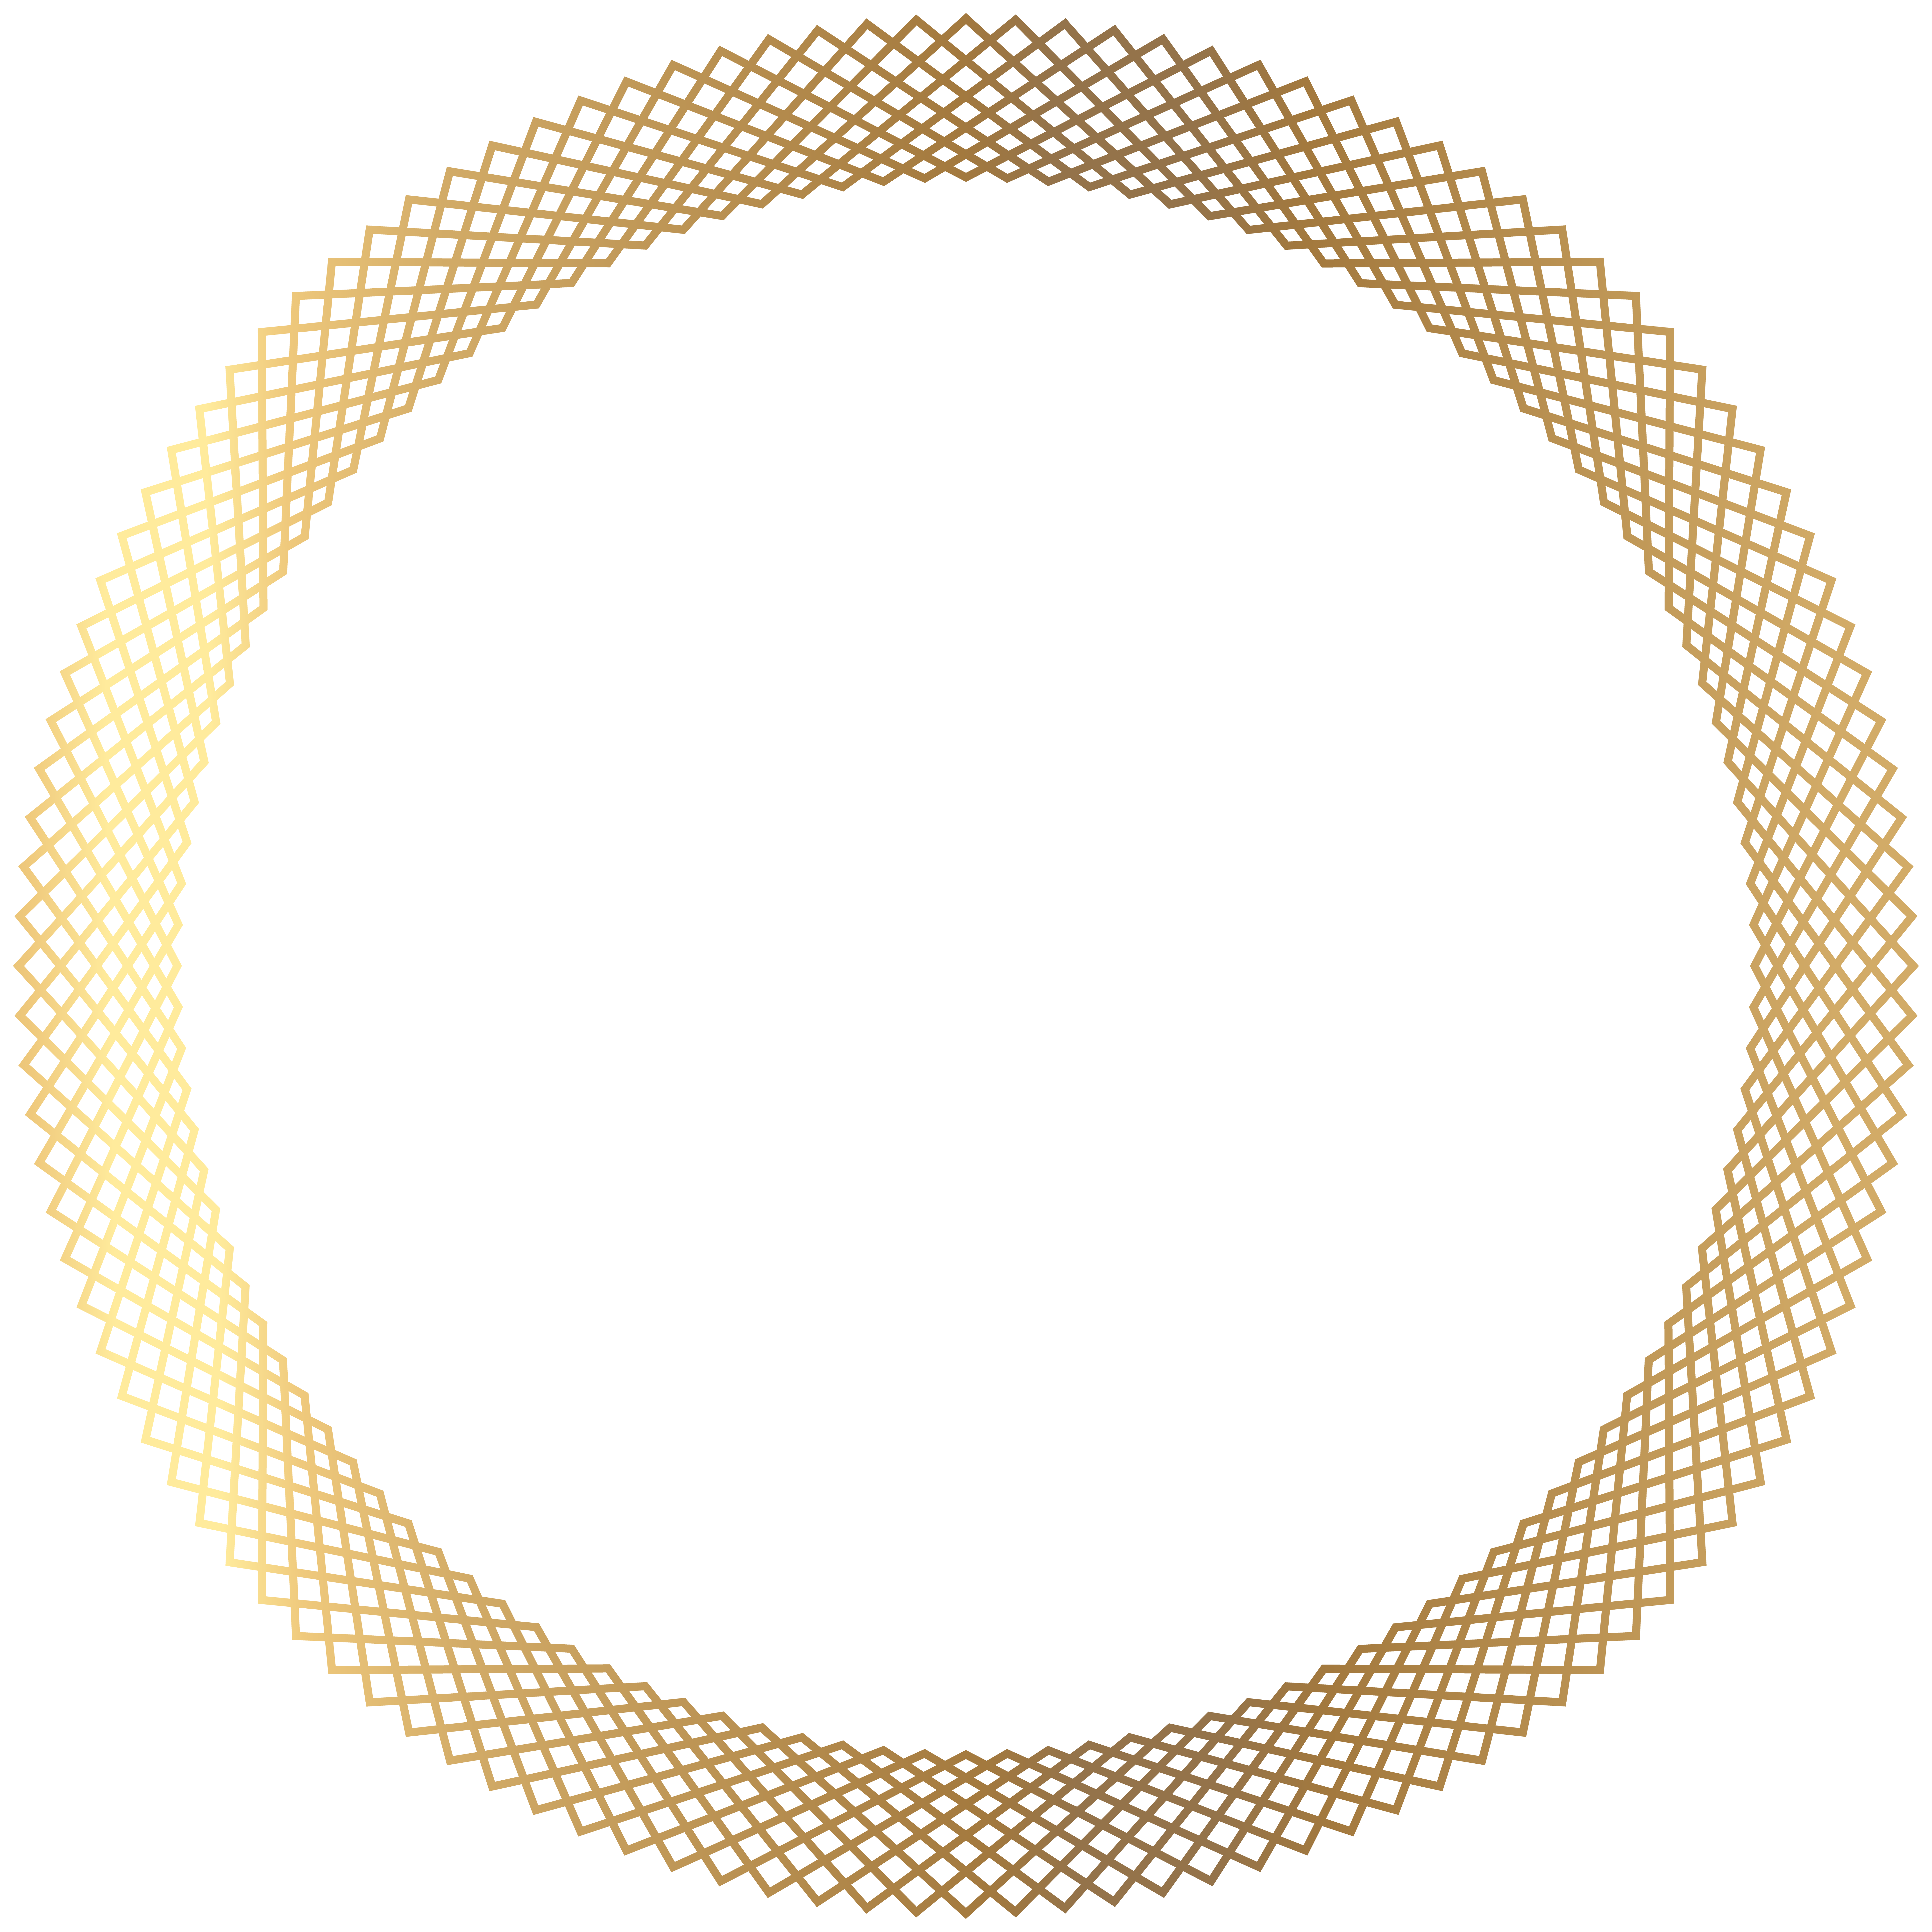 Round borders png